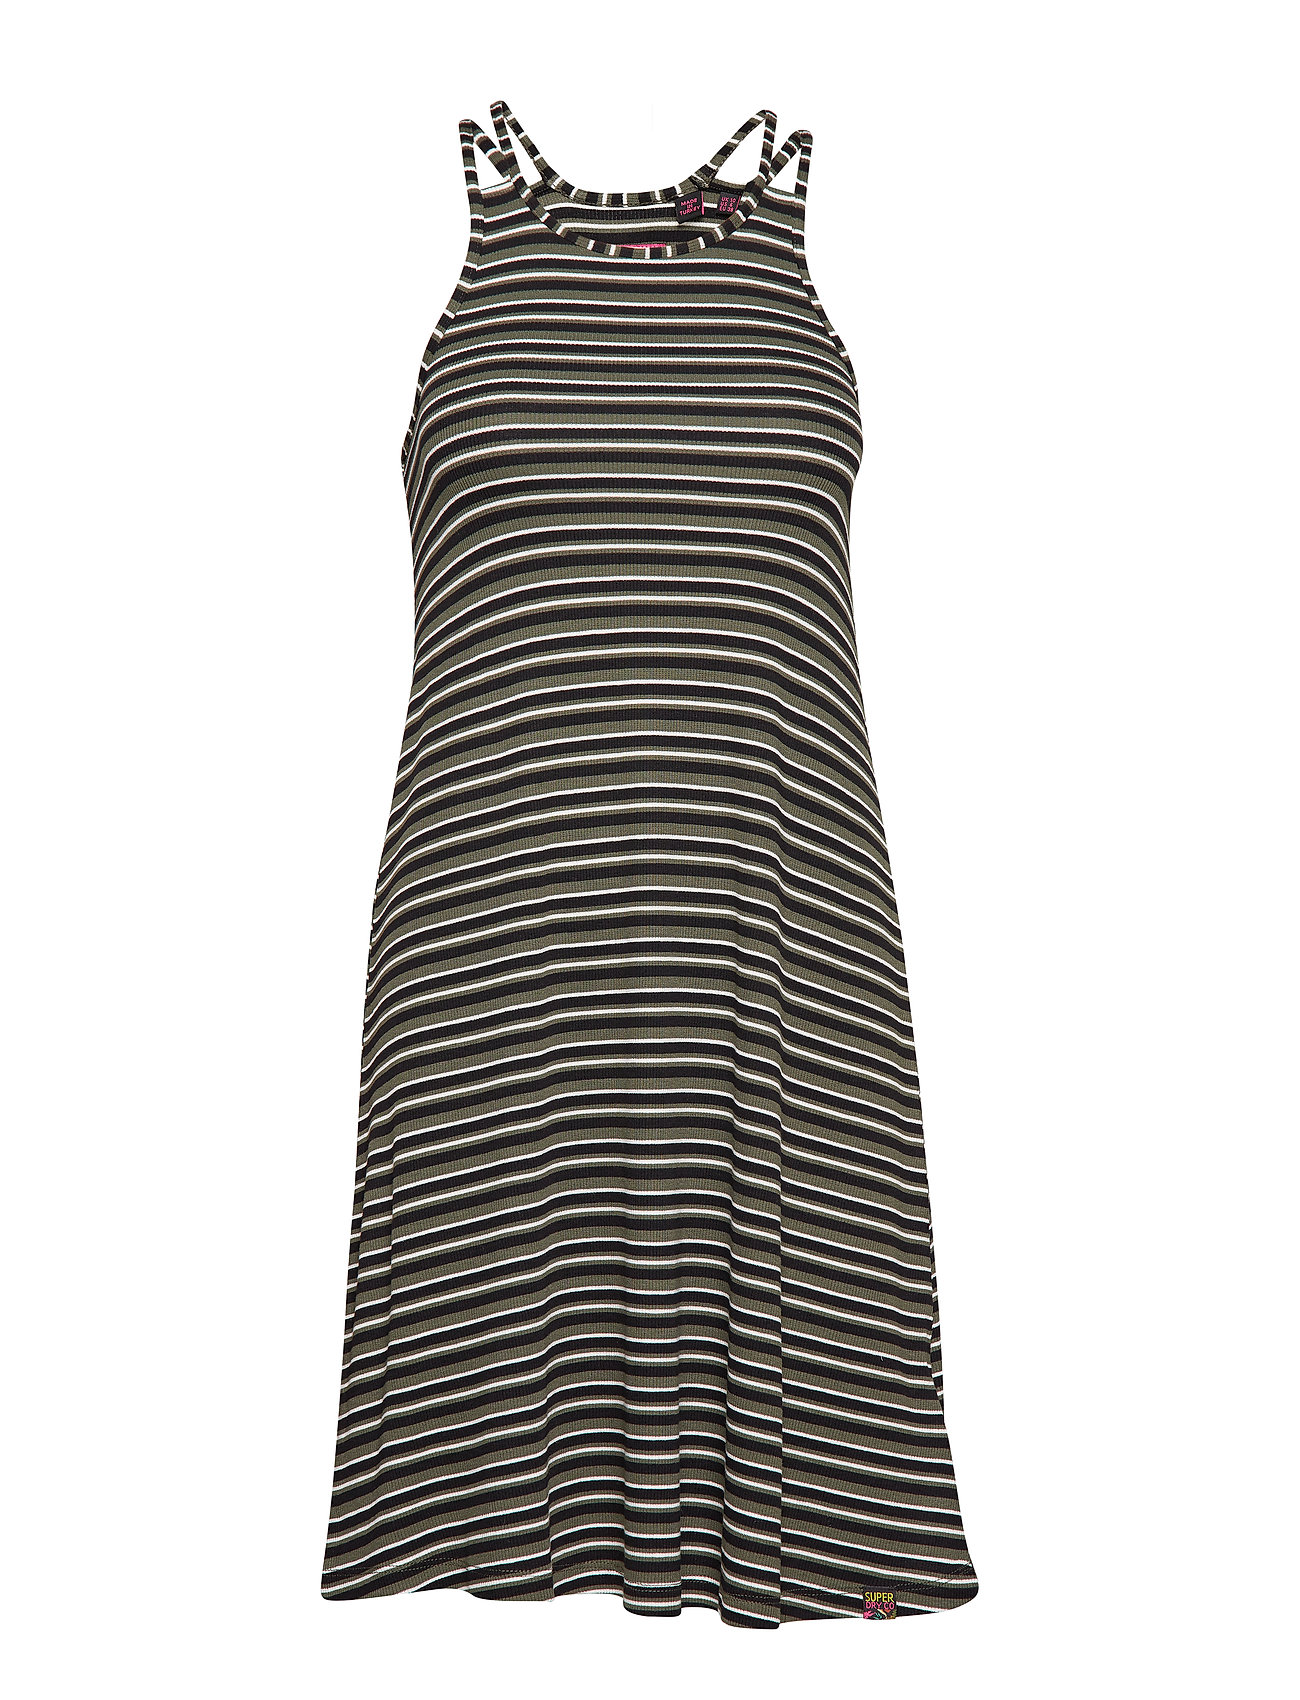 Superdry WILLIS STRIPE SWING DRESS - KHAKI CRU BLACK STRIPE